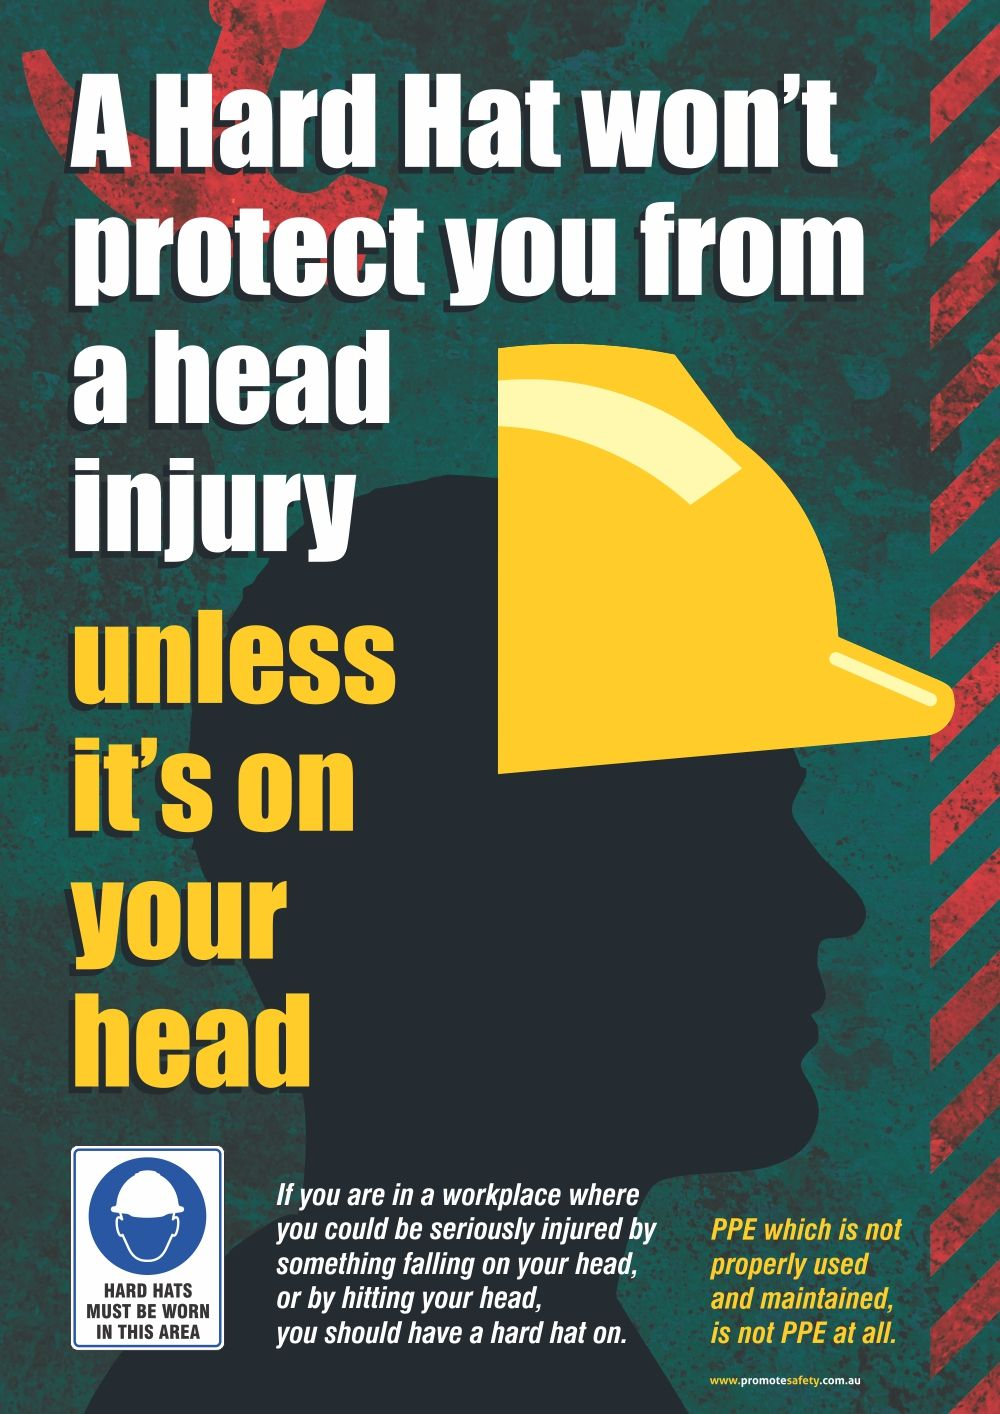 A3 size Safety Poster for construction work, mining etc